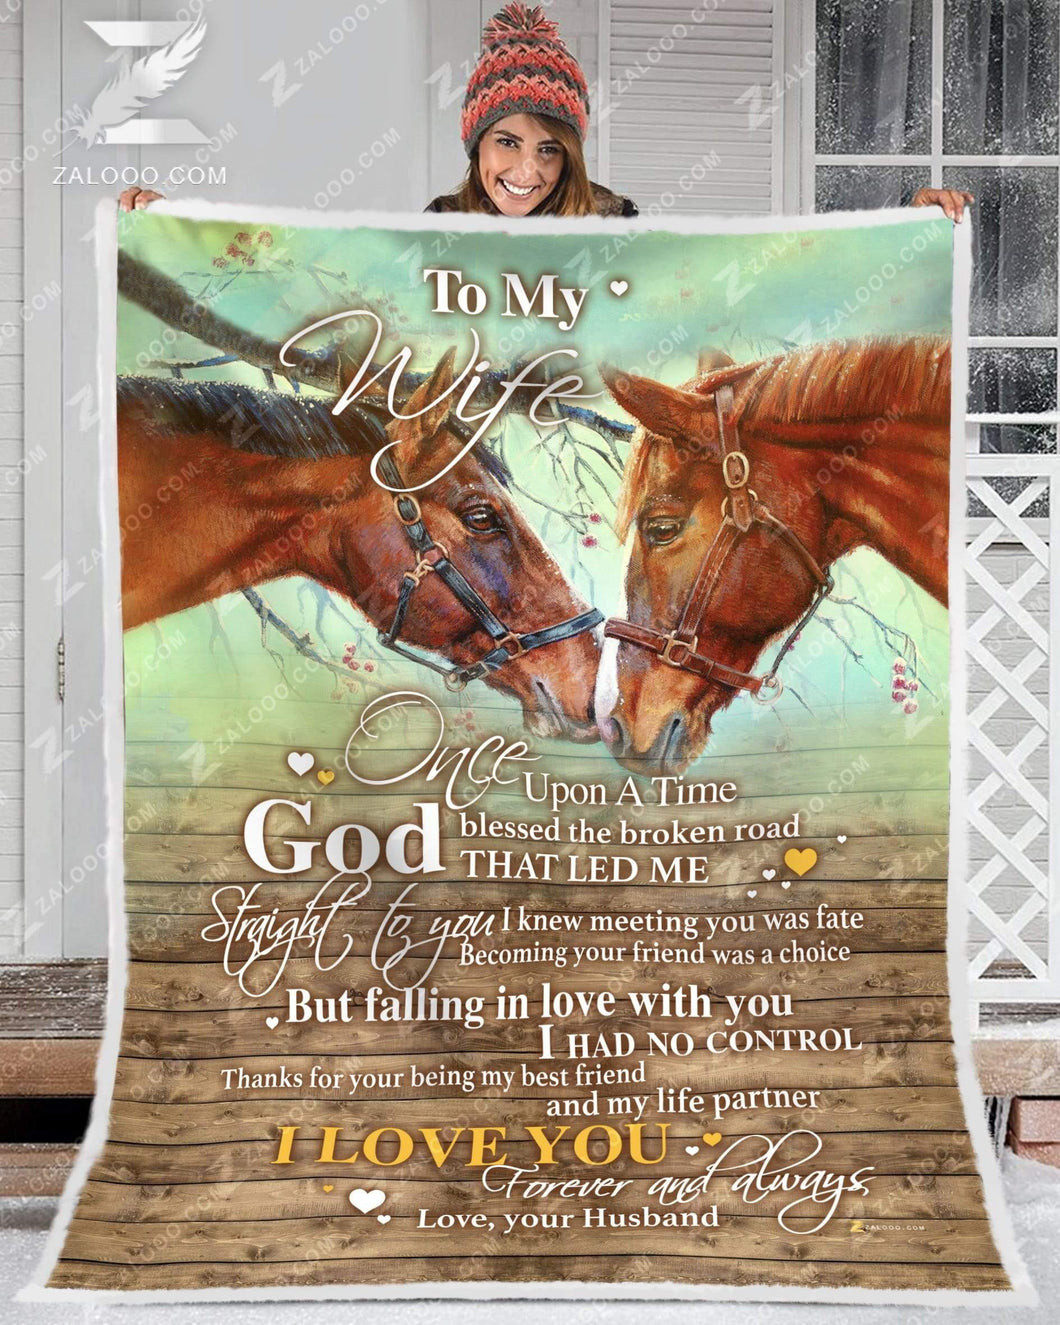 BLANKET - HORSE - To my Wife - God Blessed The Broken Road